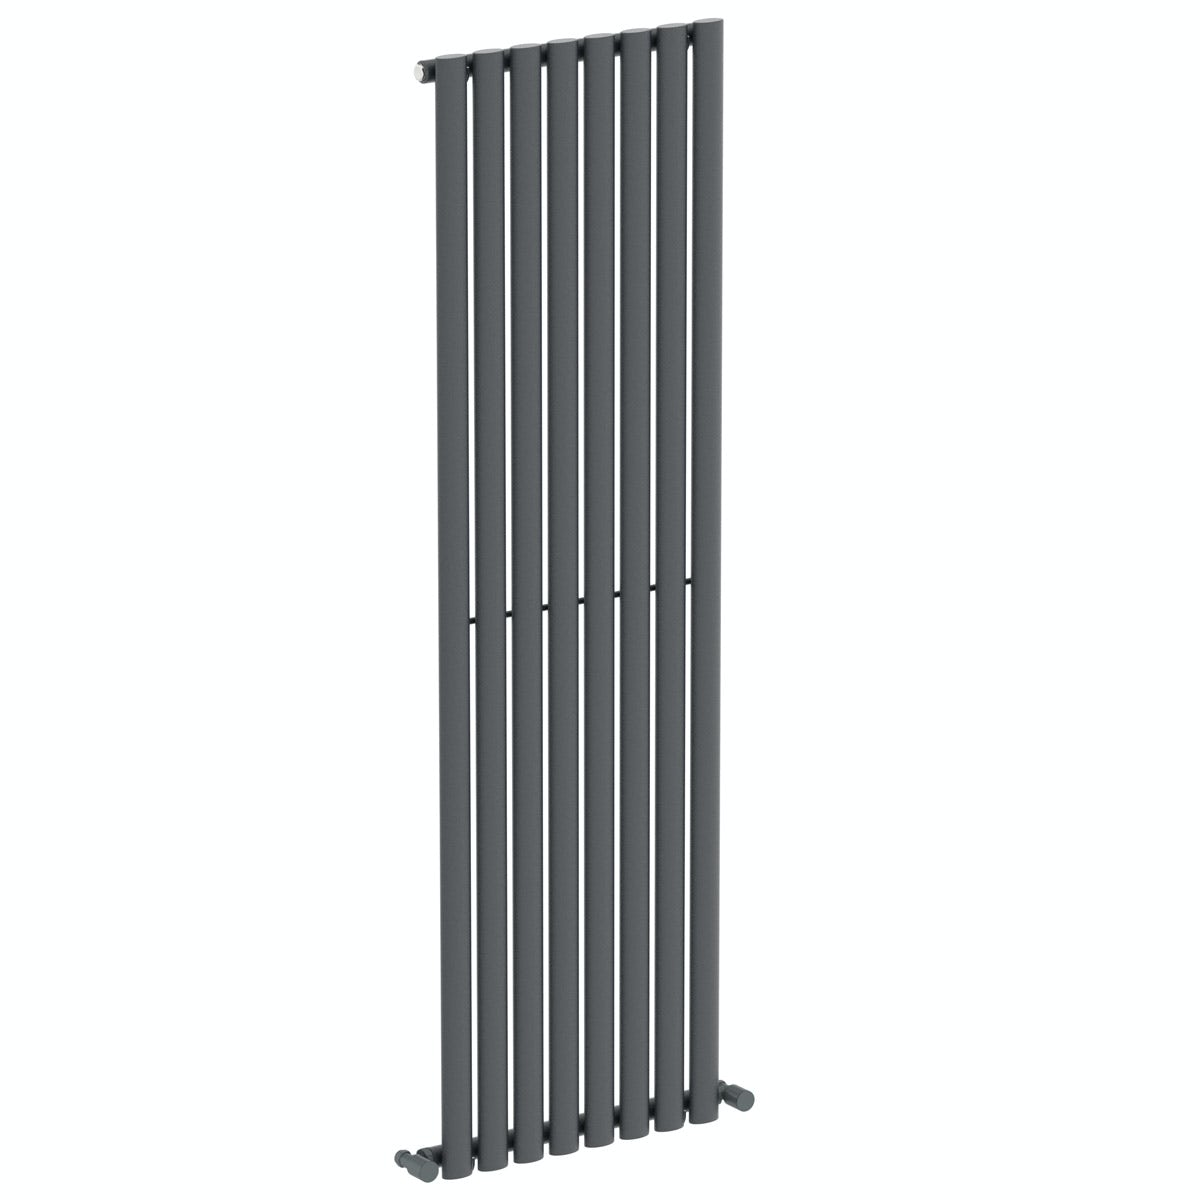 Mode Tate single vertical radiator 1600 x 480